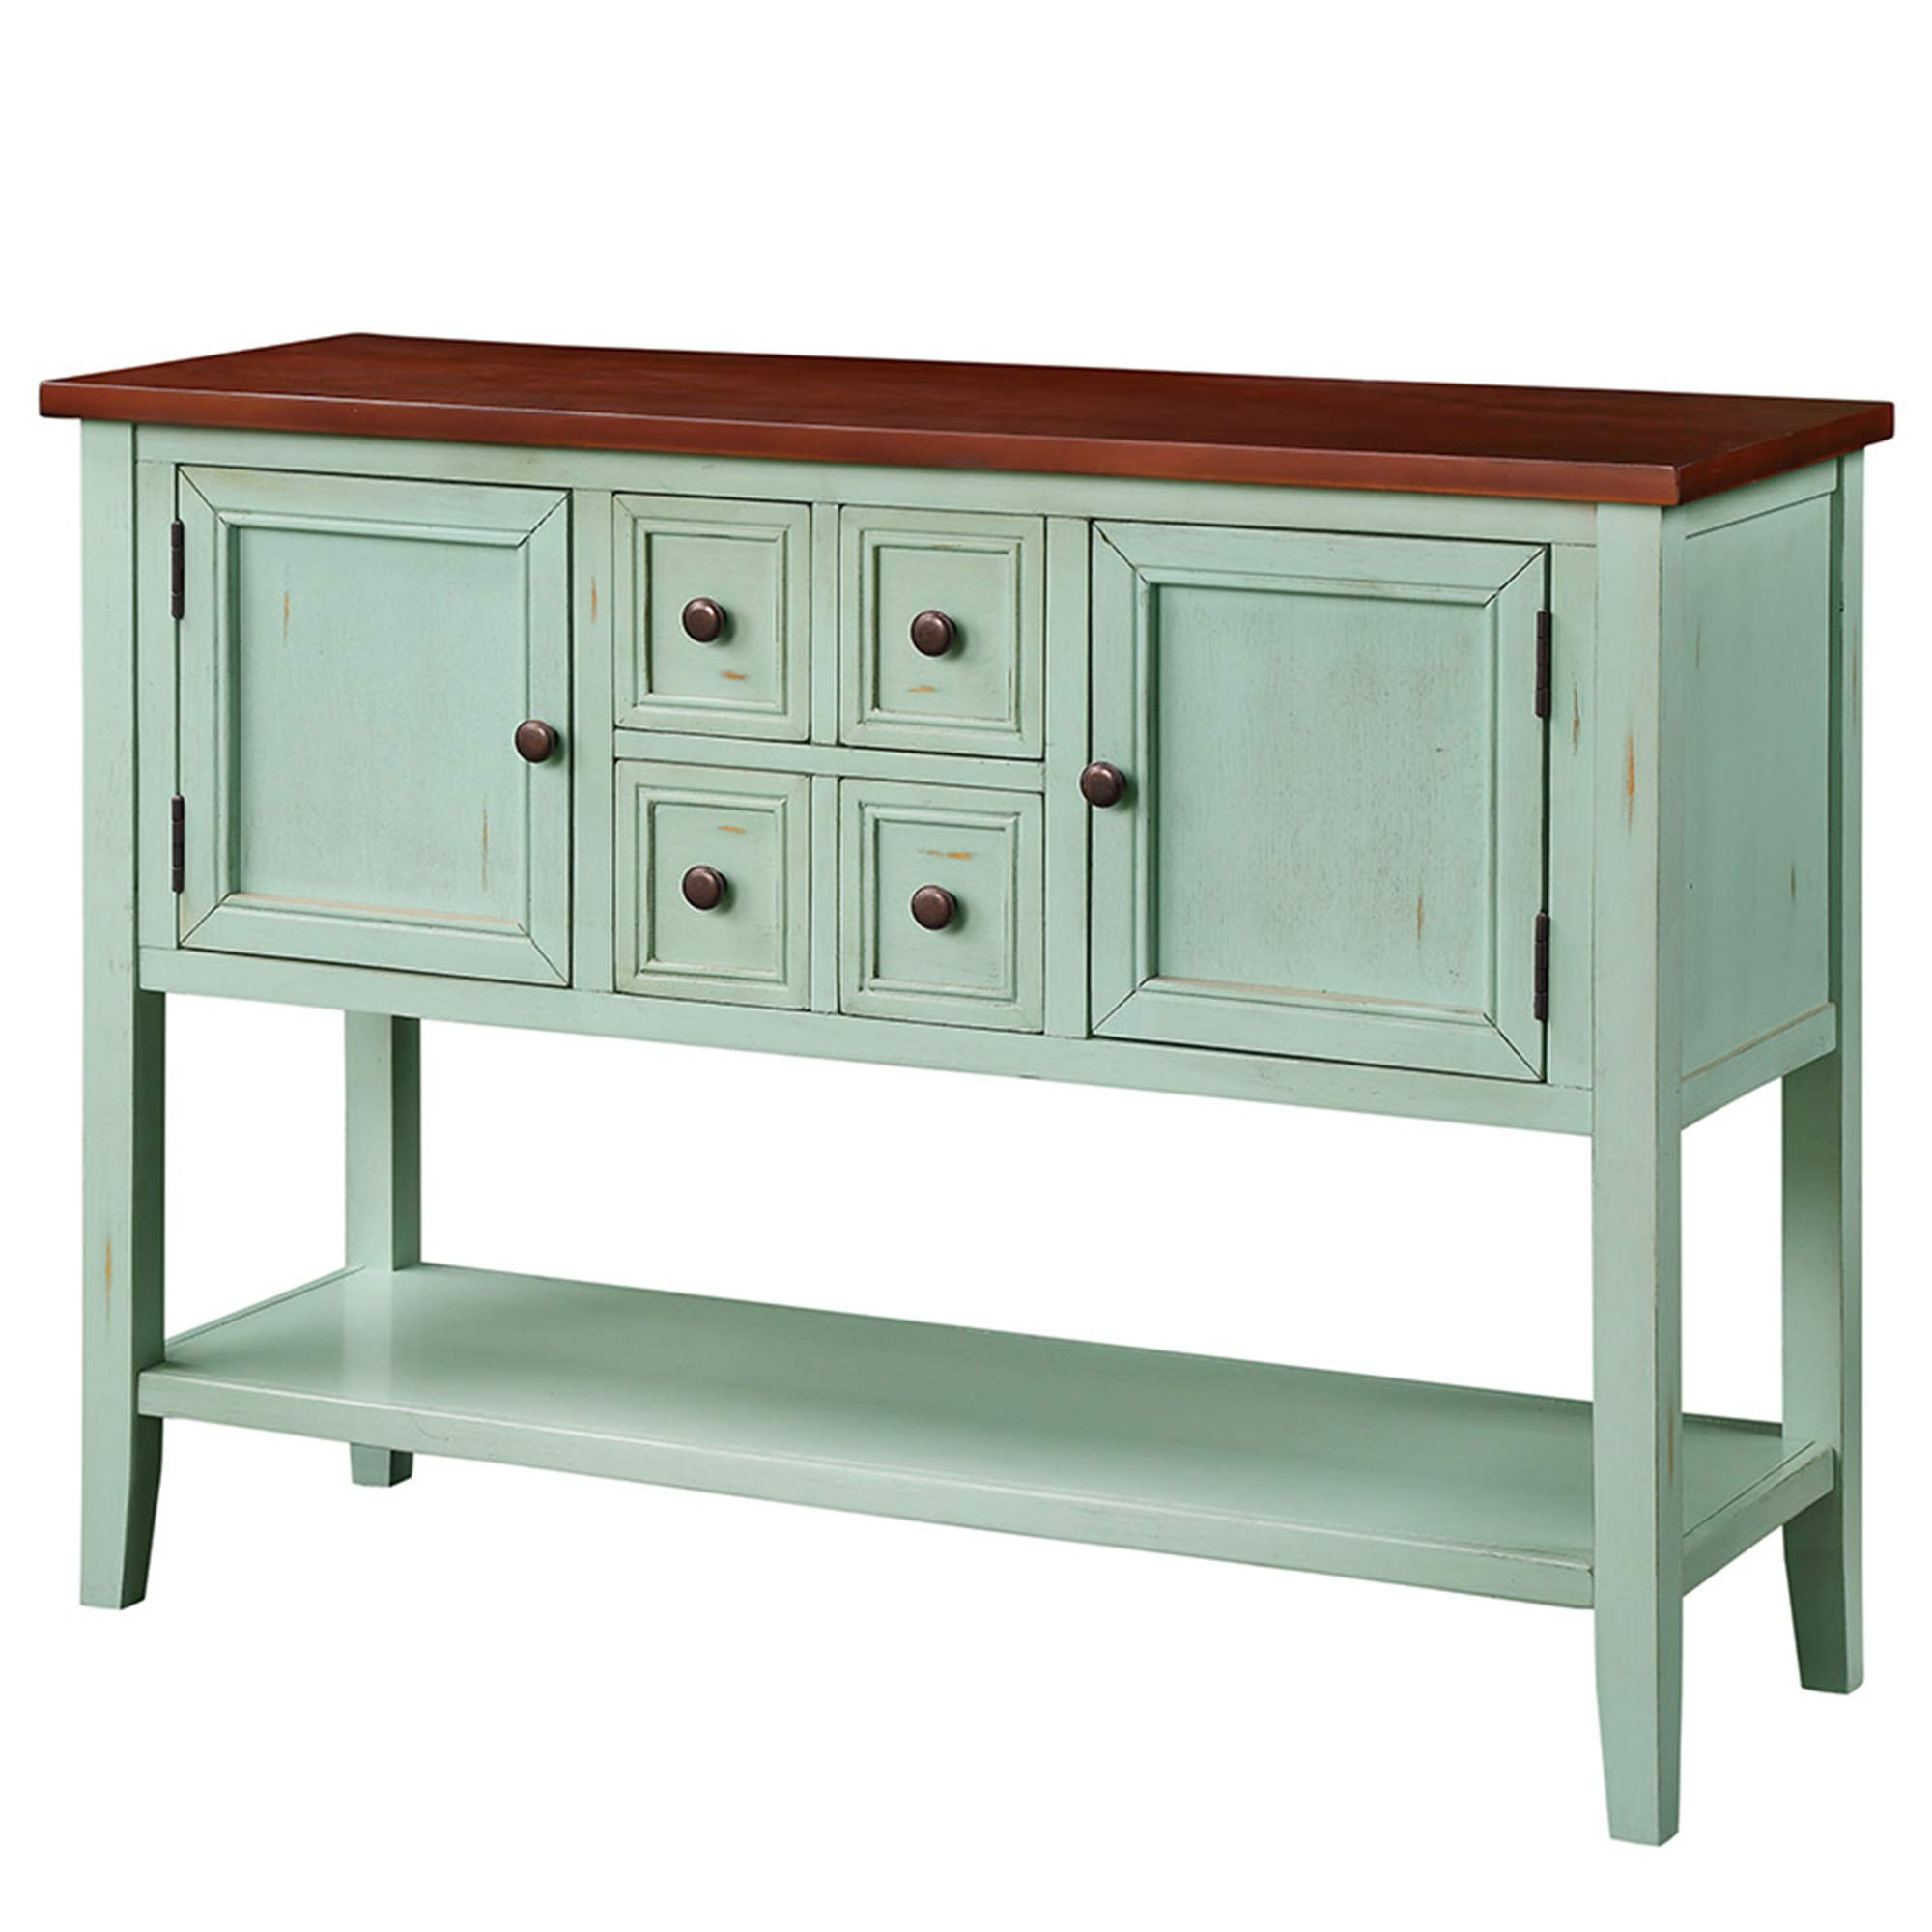 P PURLOVE Console Table Buffet Table Sideboard with Four Storage Drawers Two Cabinets and Bottom Shelf (Blue) by P PURLOVE (Image #9)